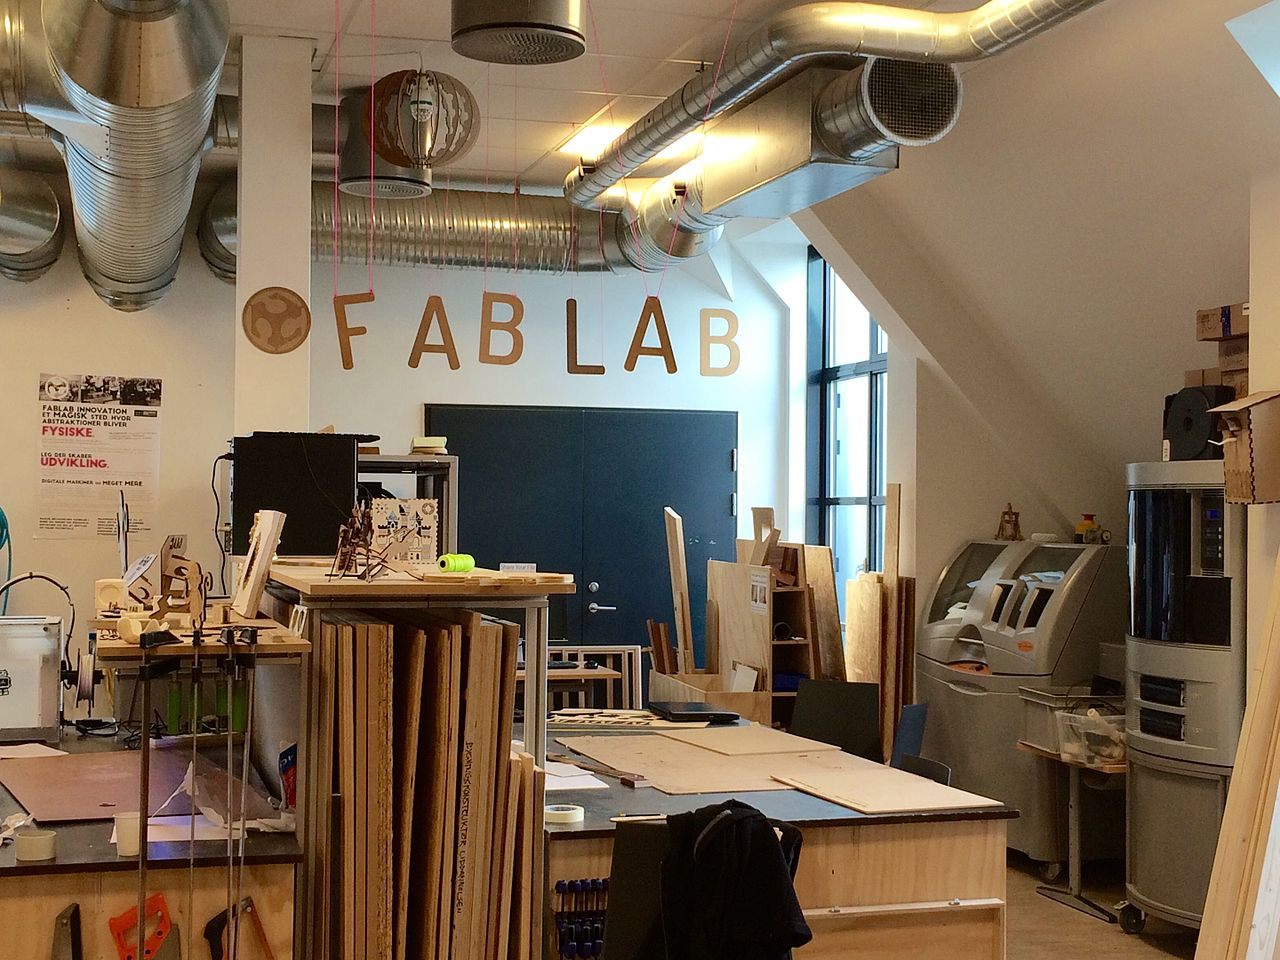 Fab Lab Director Talks Maker Movement Ahead Of Saturday's Mini Maker Faire